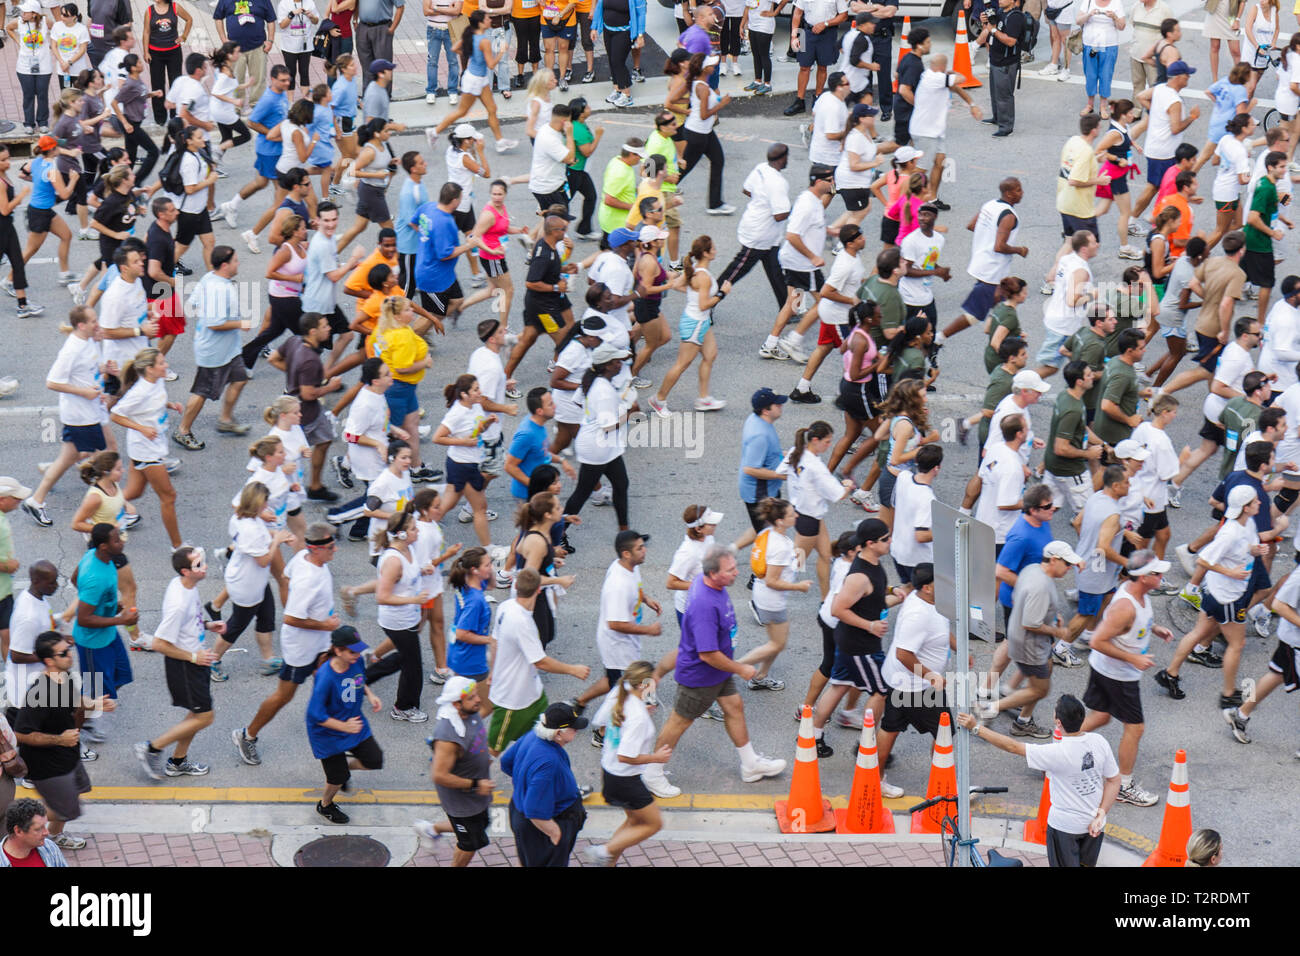 Miami Florida Bayfront Park Mercedes-Benz Miami Corporate Run community charity event runners coworkers co-workers man woman cro - Stock Image